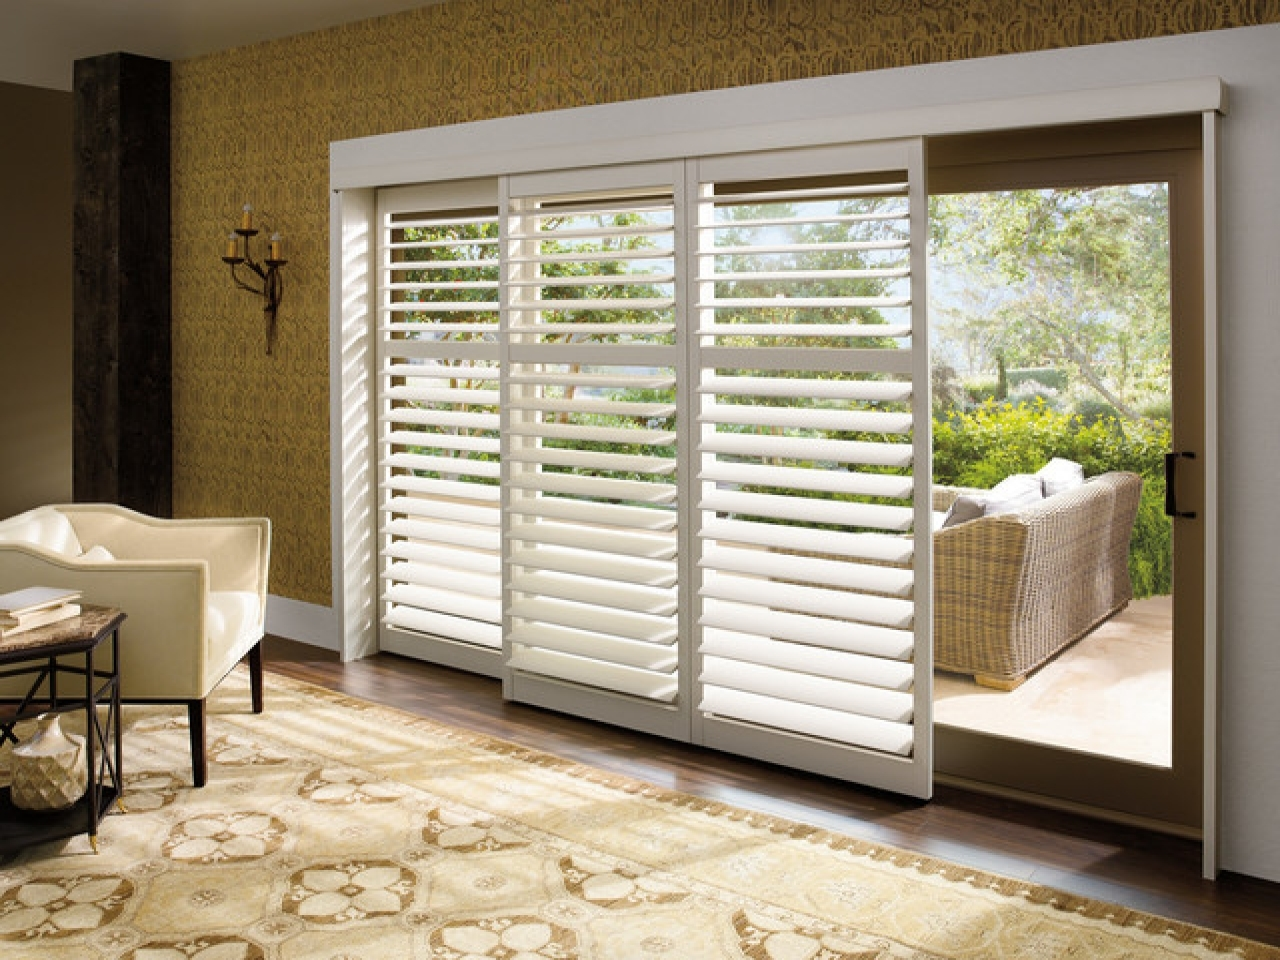 Best Way To Cover Large Sliding Glass Doorswindow treatments for sliding glass doors ideas tips